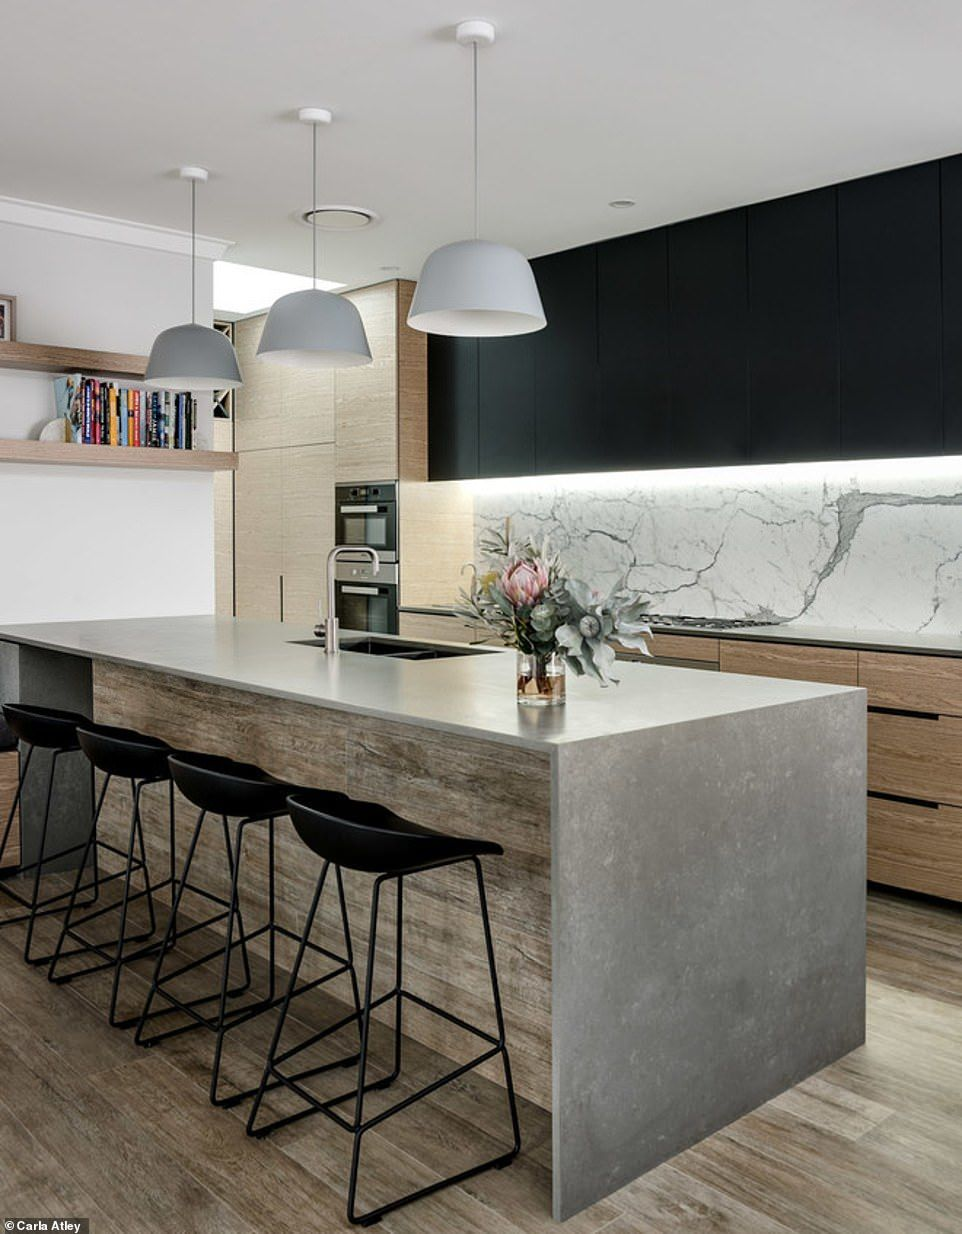 kitchen, wooden floor, white wall, grey counter top, wooden island, wooden cabinet, black upper cabinet, white marble backsplash, white pendants, black stools